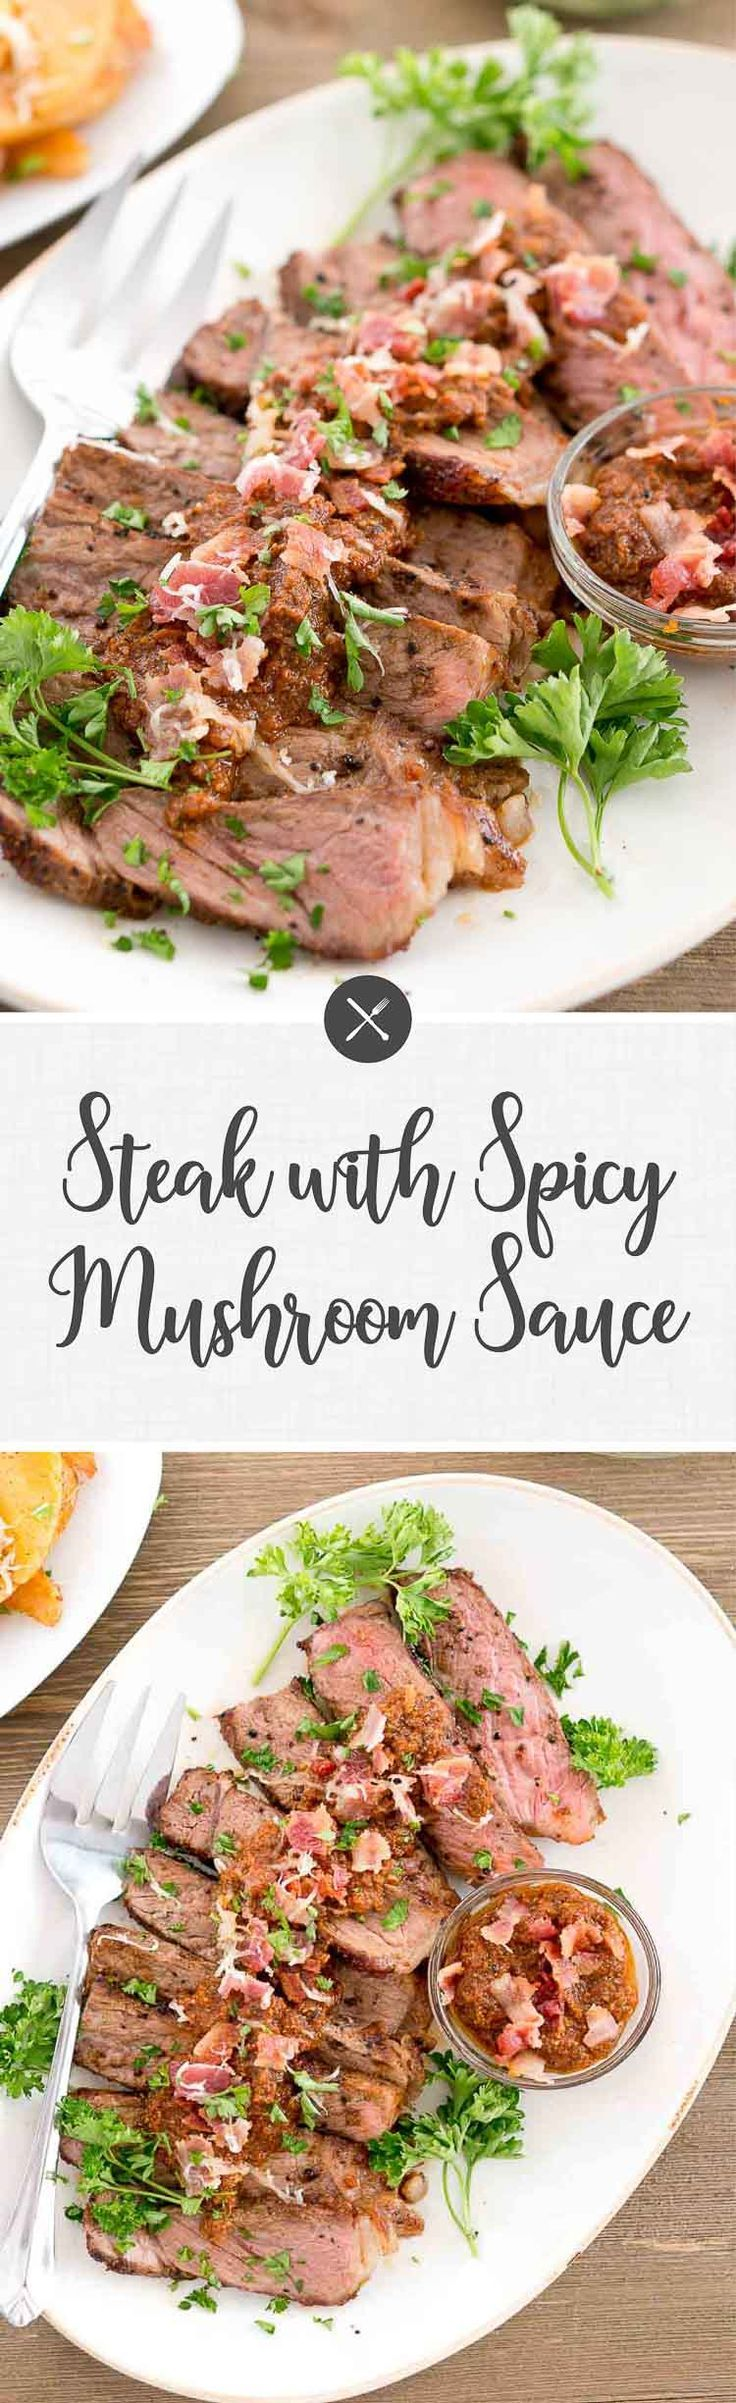 Steak with Spicy Mushroom Sauce is a great and easy recipe for midweek dinners. The mushroom sauce takes the steak to the next level.  via @NeliHoward